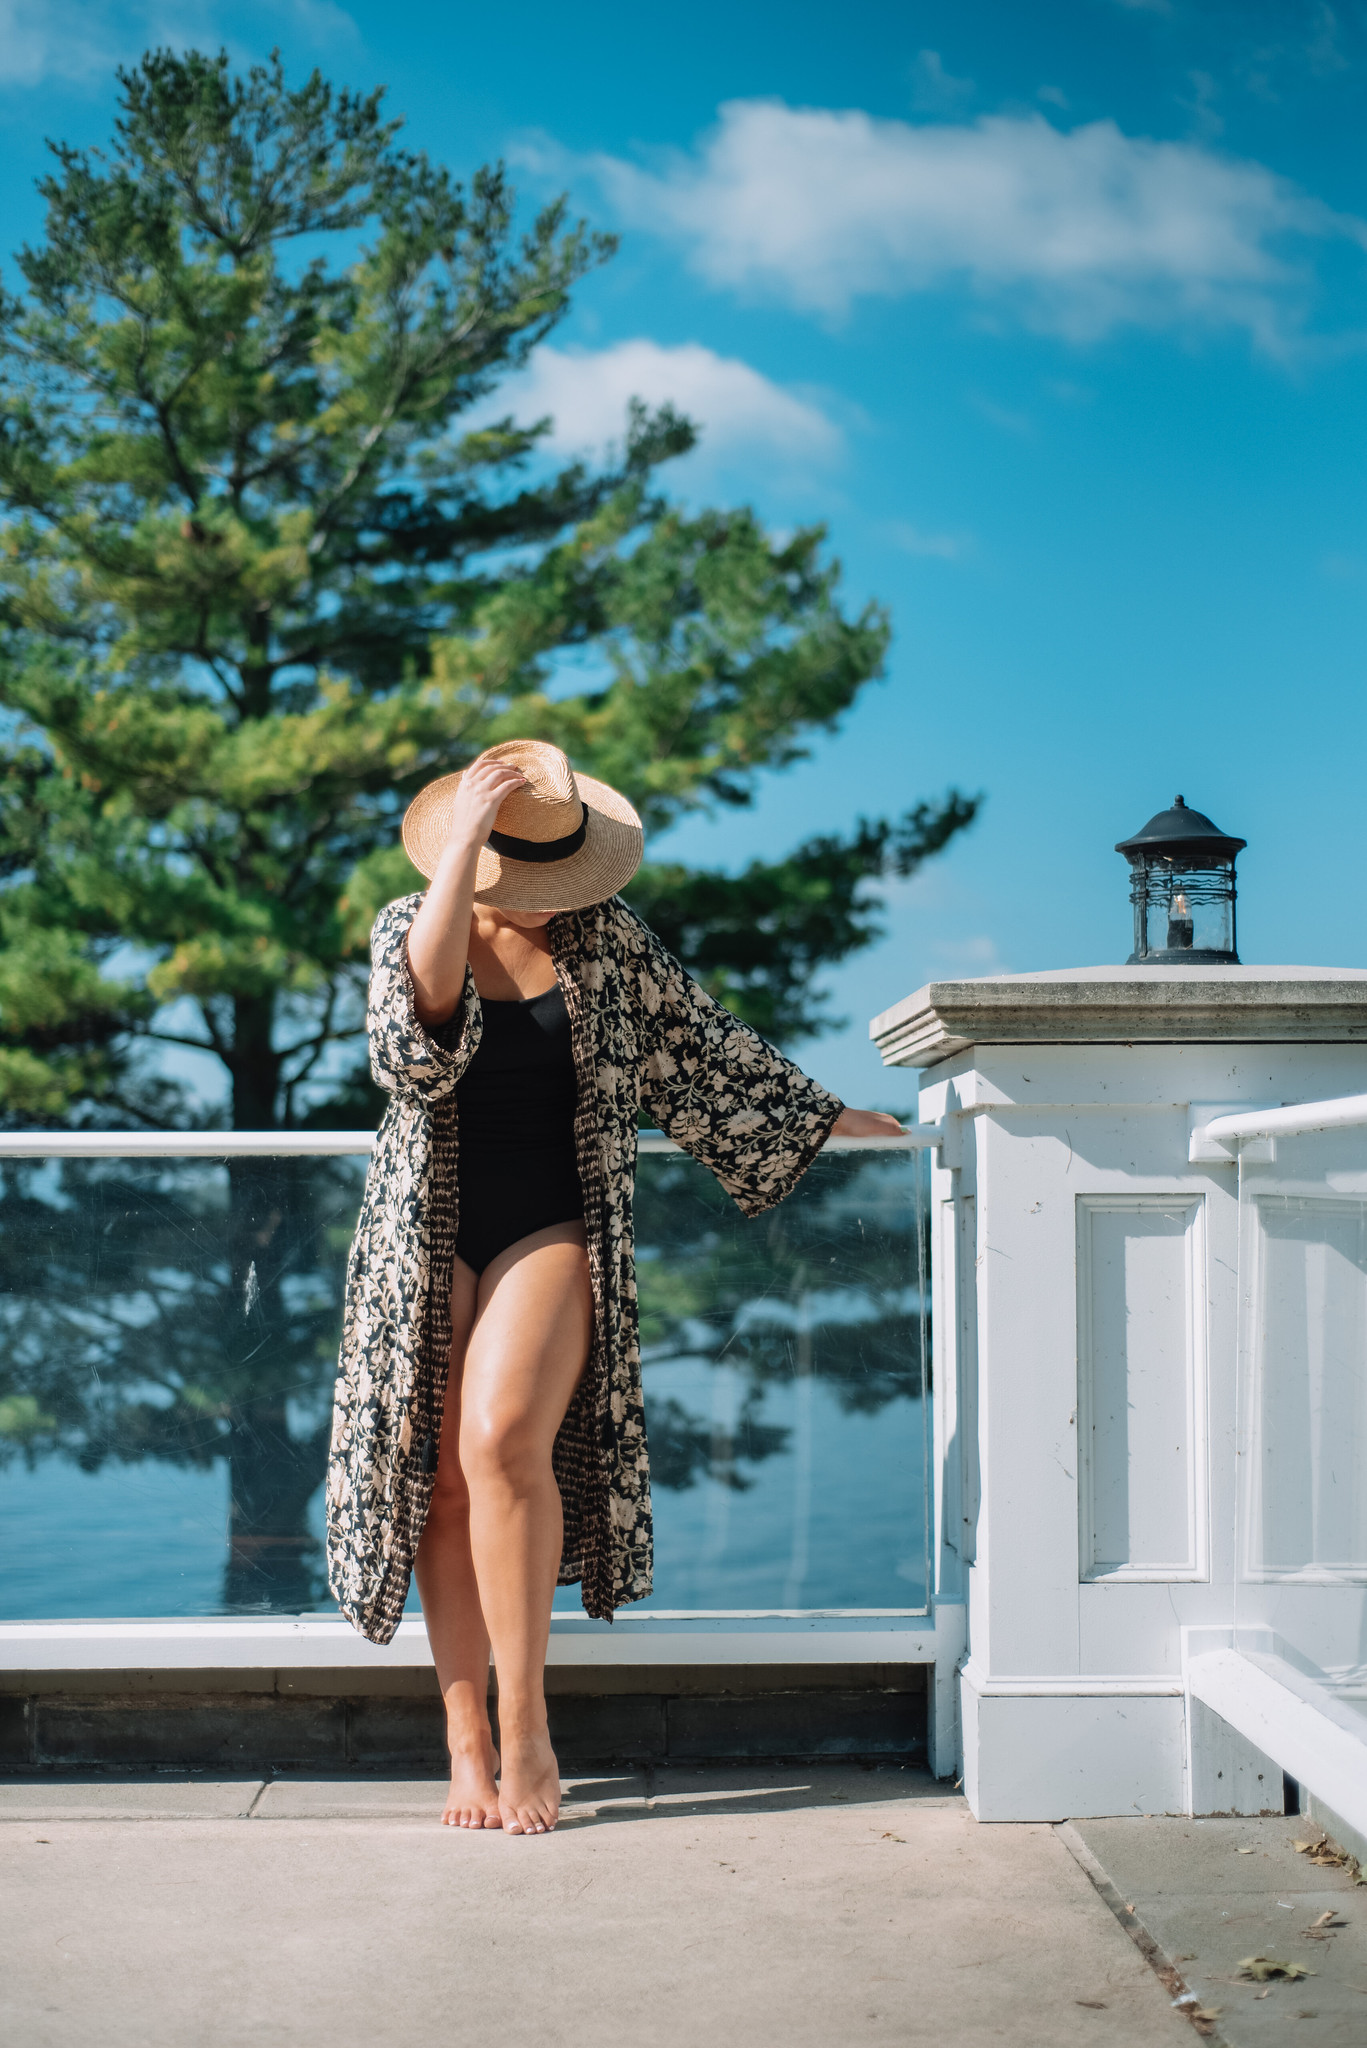 The Best Black Swimsuits of Summer 2021   Bikini Poses   Black Bathing Suits   Summer Outfits   Vacation Outfit Ideas   Bikini Picture Ideas   Free People Kimono   Swimsuit Coverups   Aerie One Piece   Lake George, NY   The Sagamore Resort   Summer Roadtrip Packing List